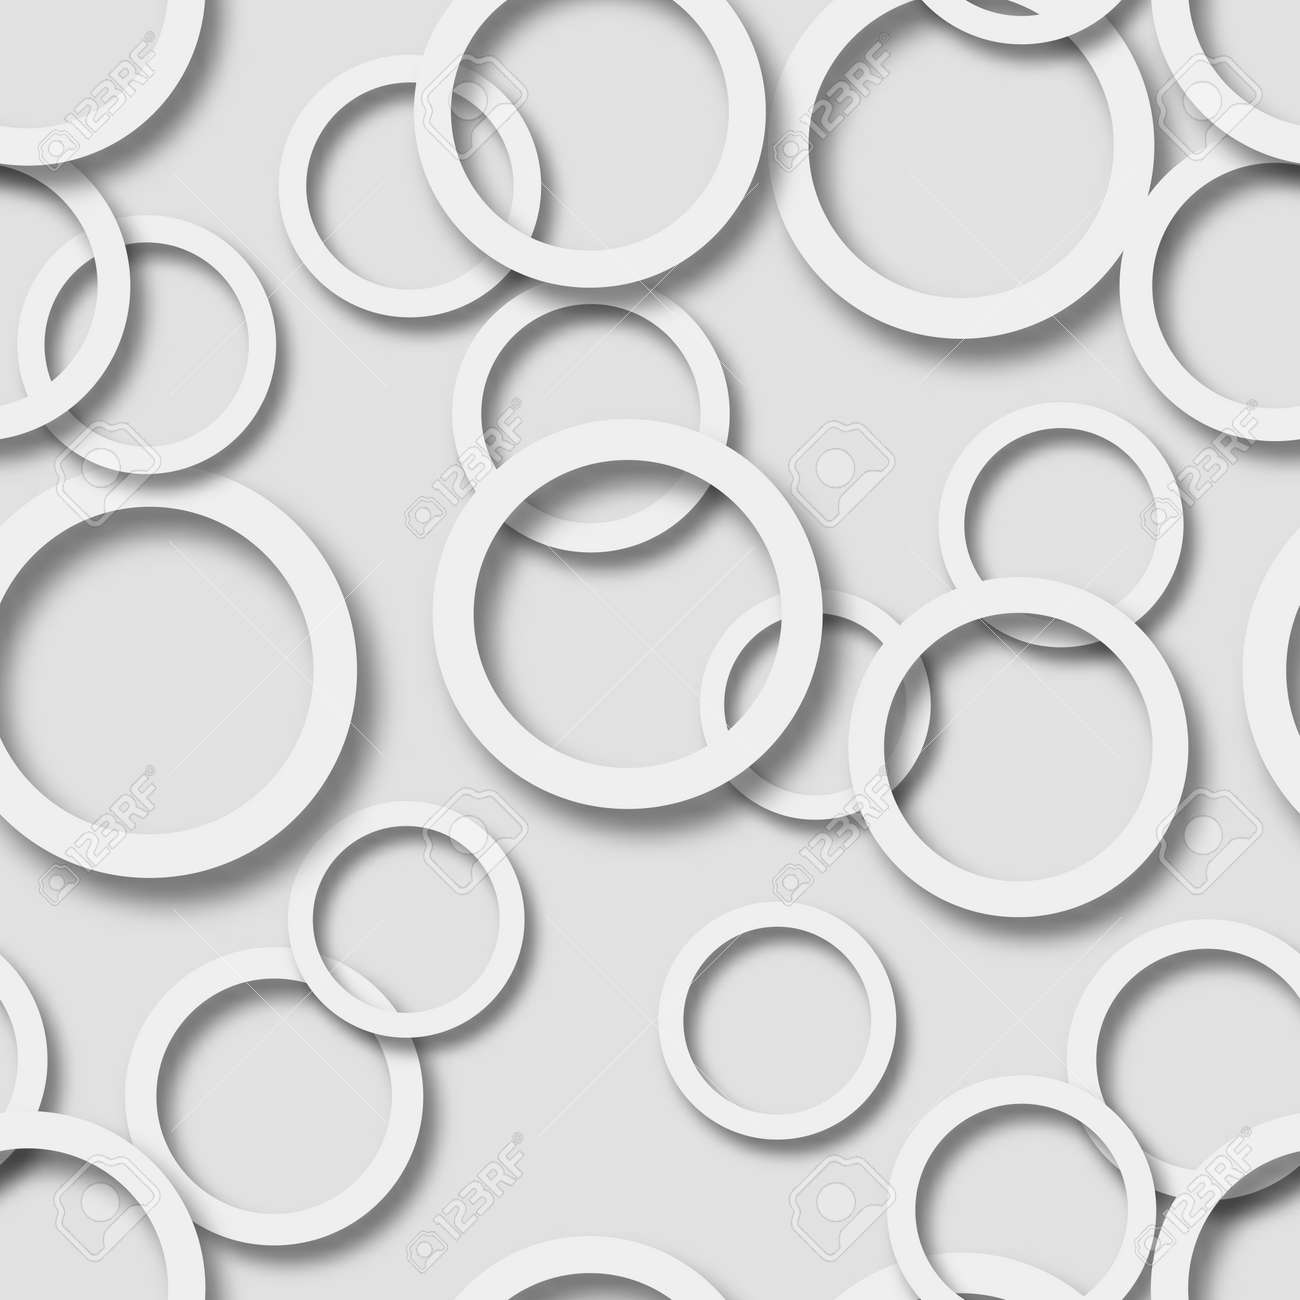 Abstract seamless pattern of randomly arranged white rings with soft shadows on gray background - 121810944